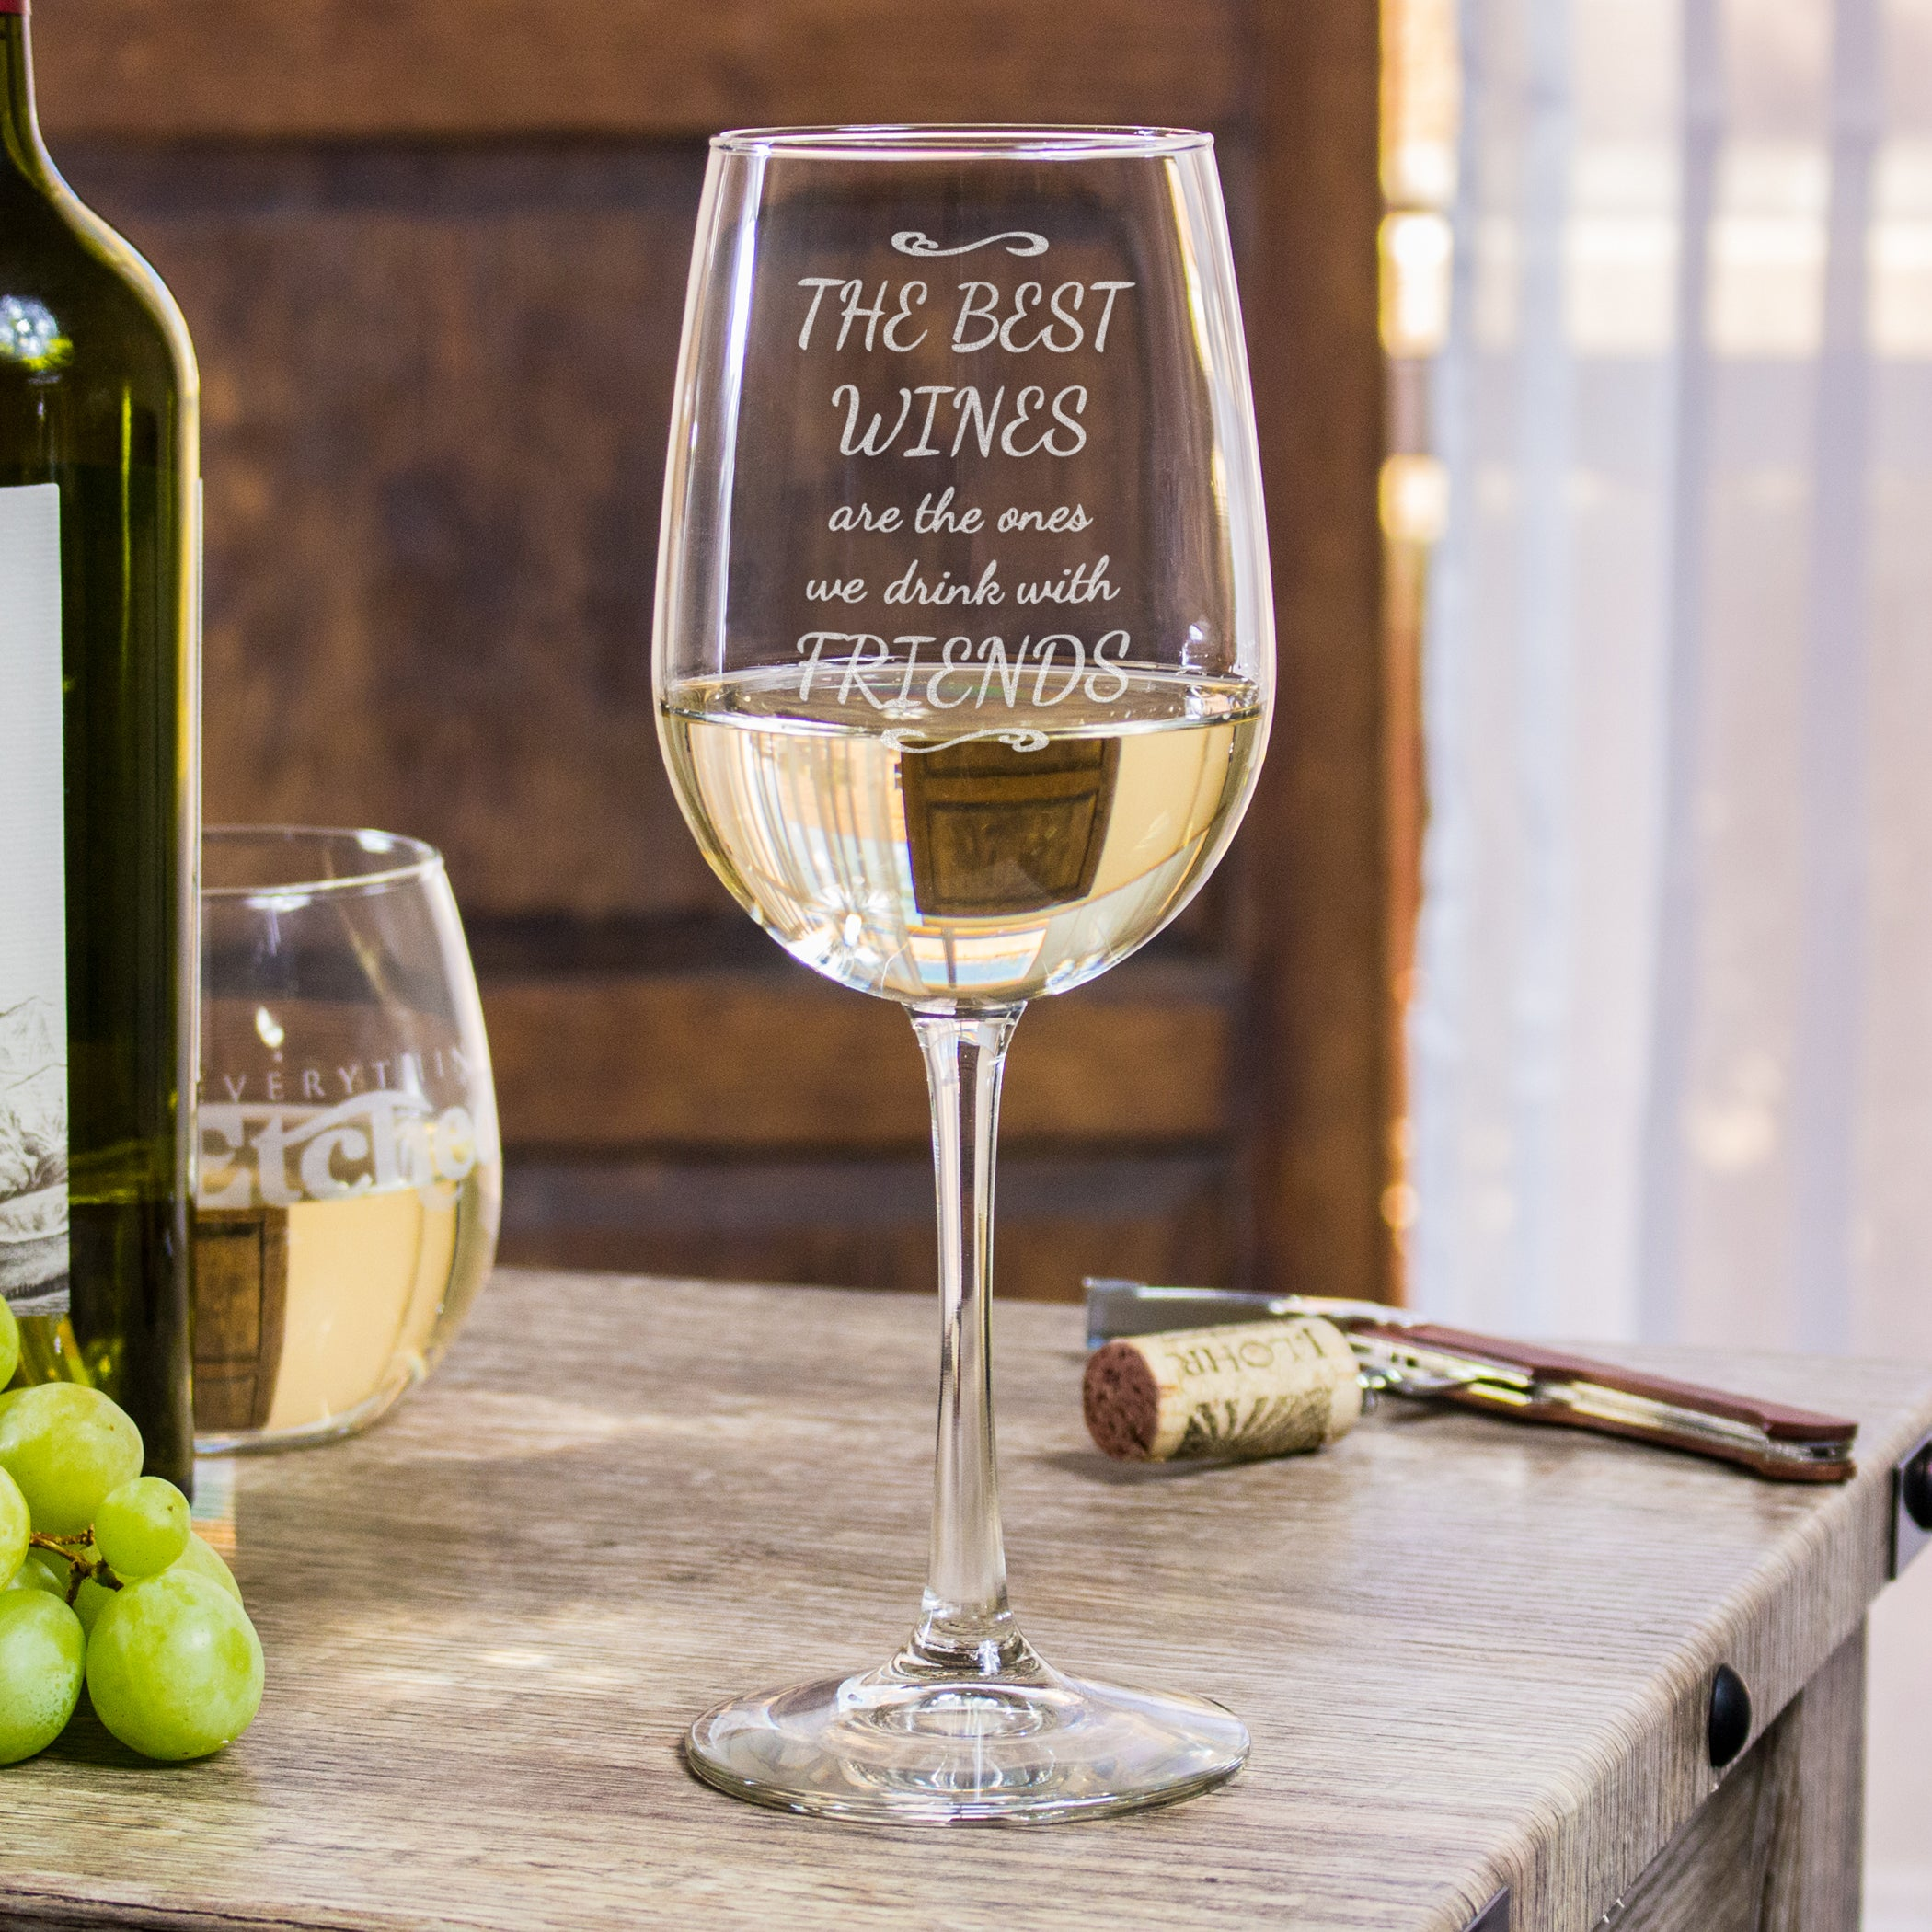 53c243d8ba0 The Best Wines are the Ones we Share with Friends - Funny Wine Glass Large  18 ...